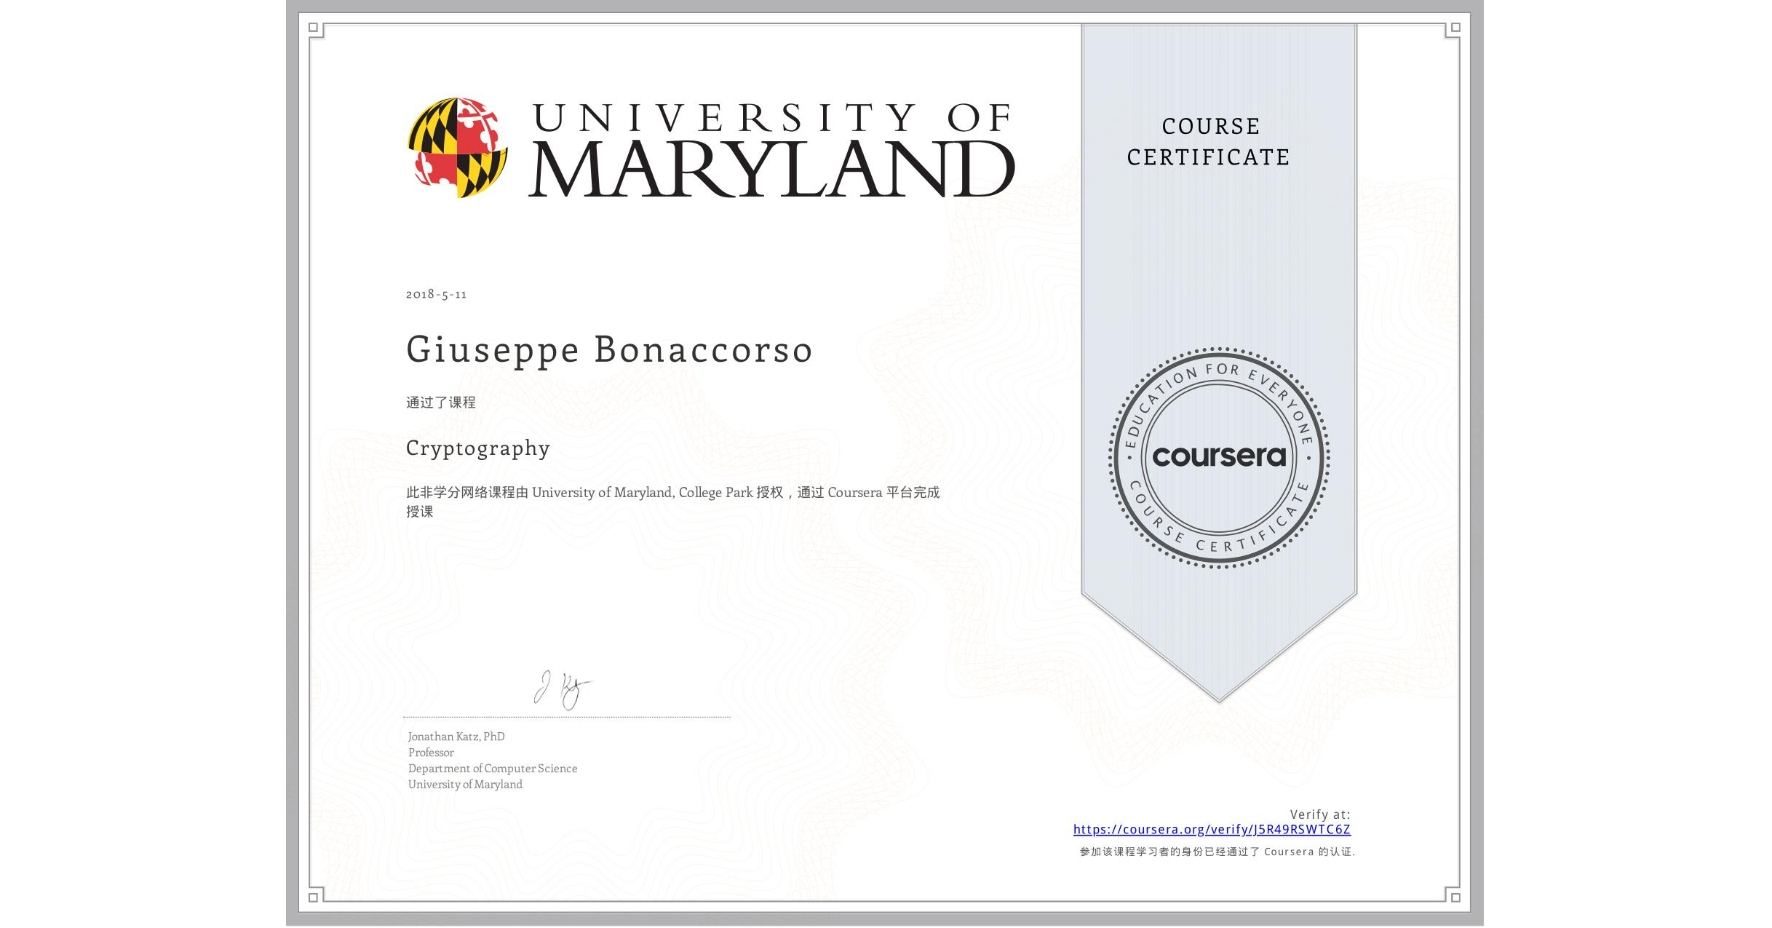 View certificate for Giuseppe Bonaccorso, Cryptography, an online non-credit course authorized by University of Maryland, College Park and offered through Coursera